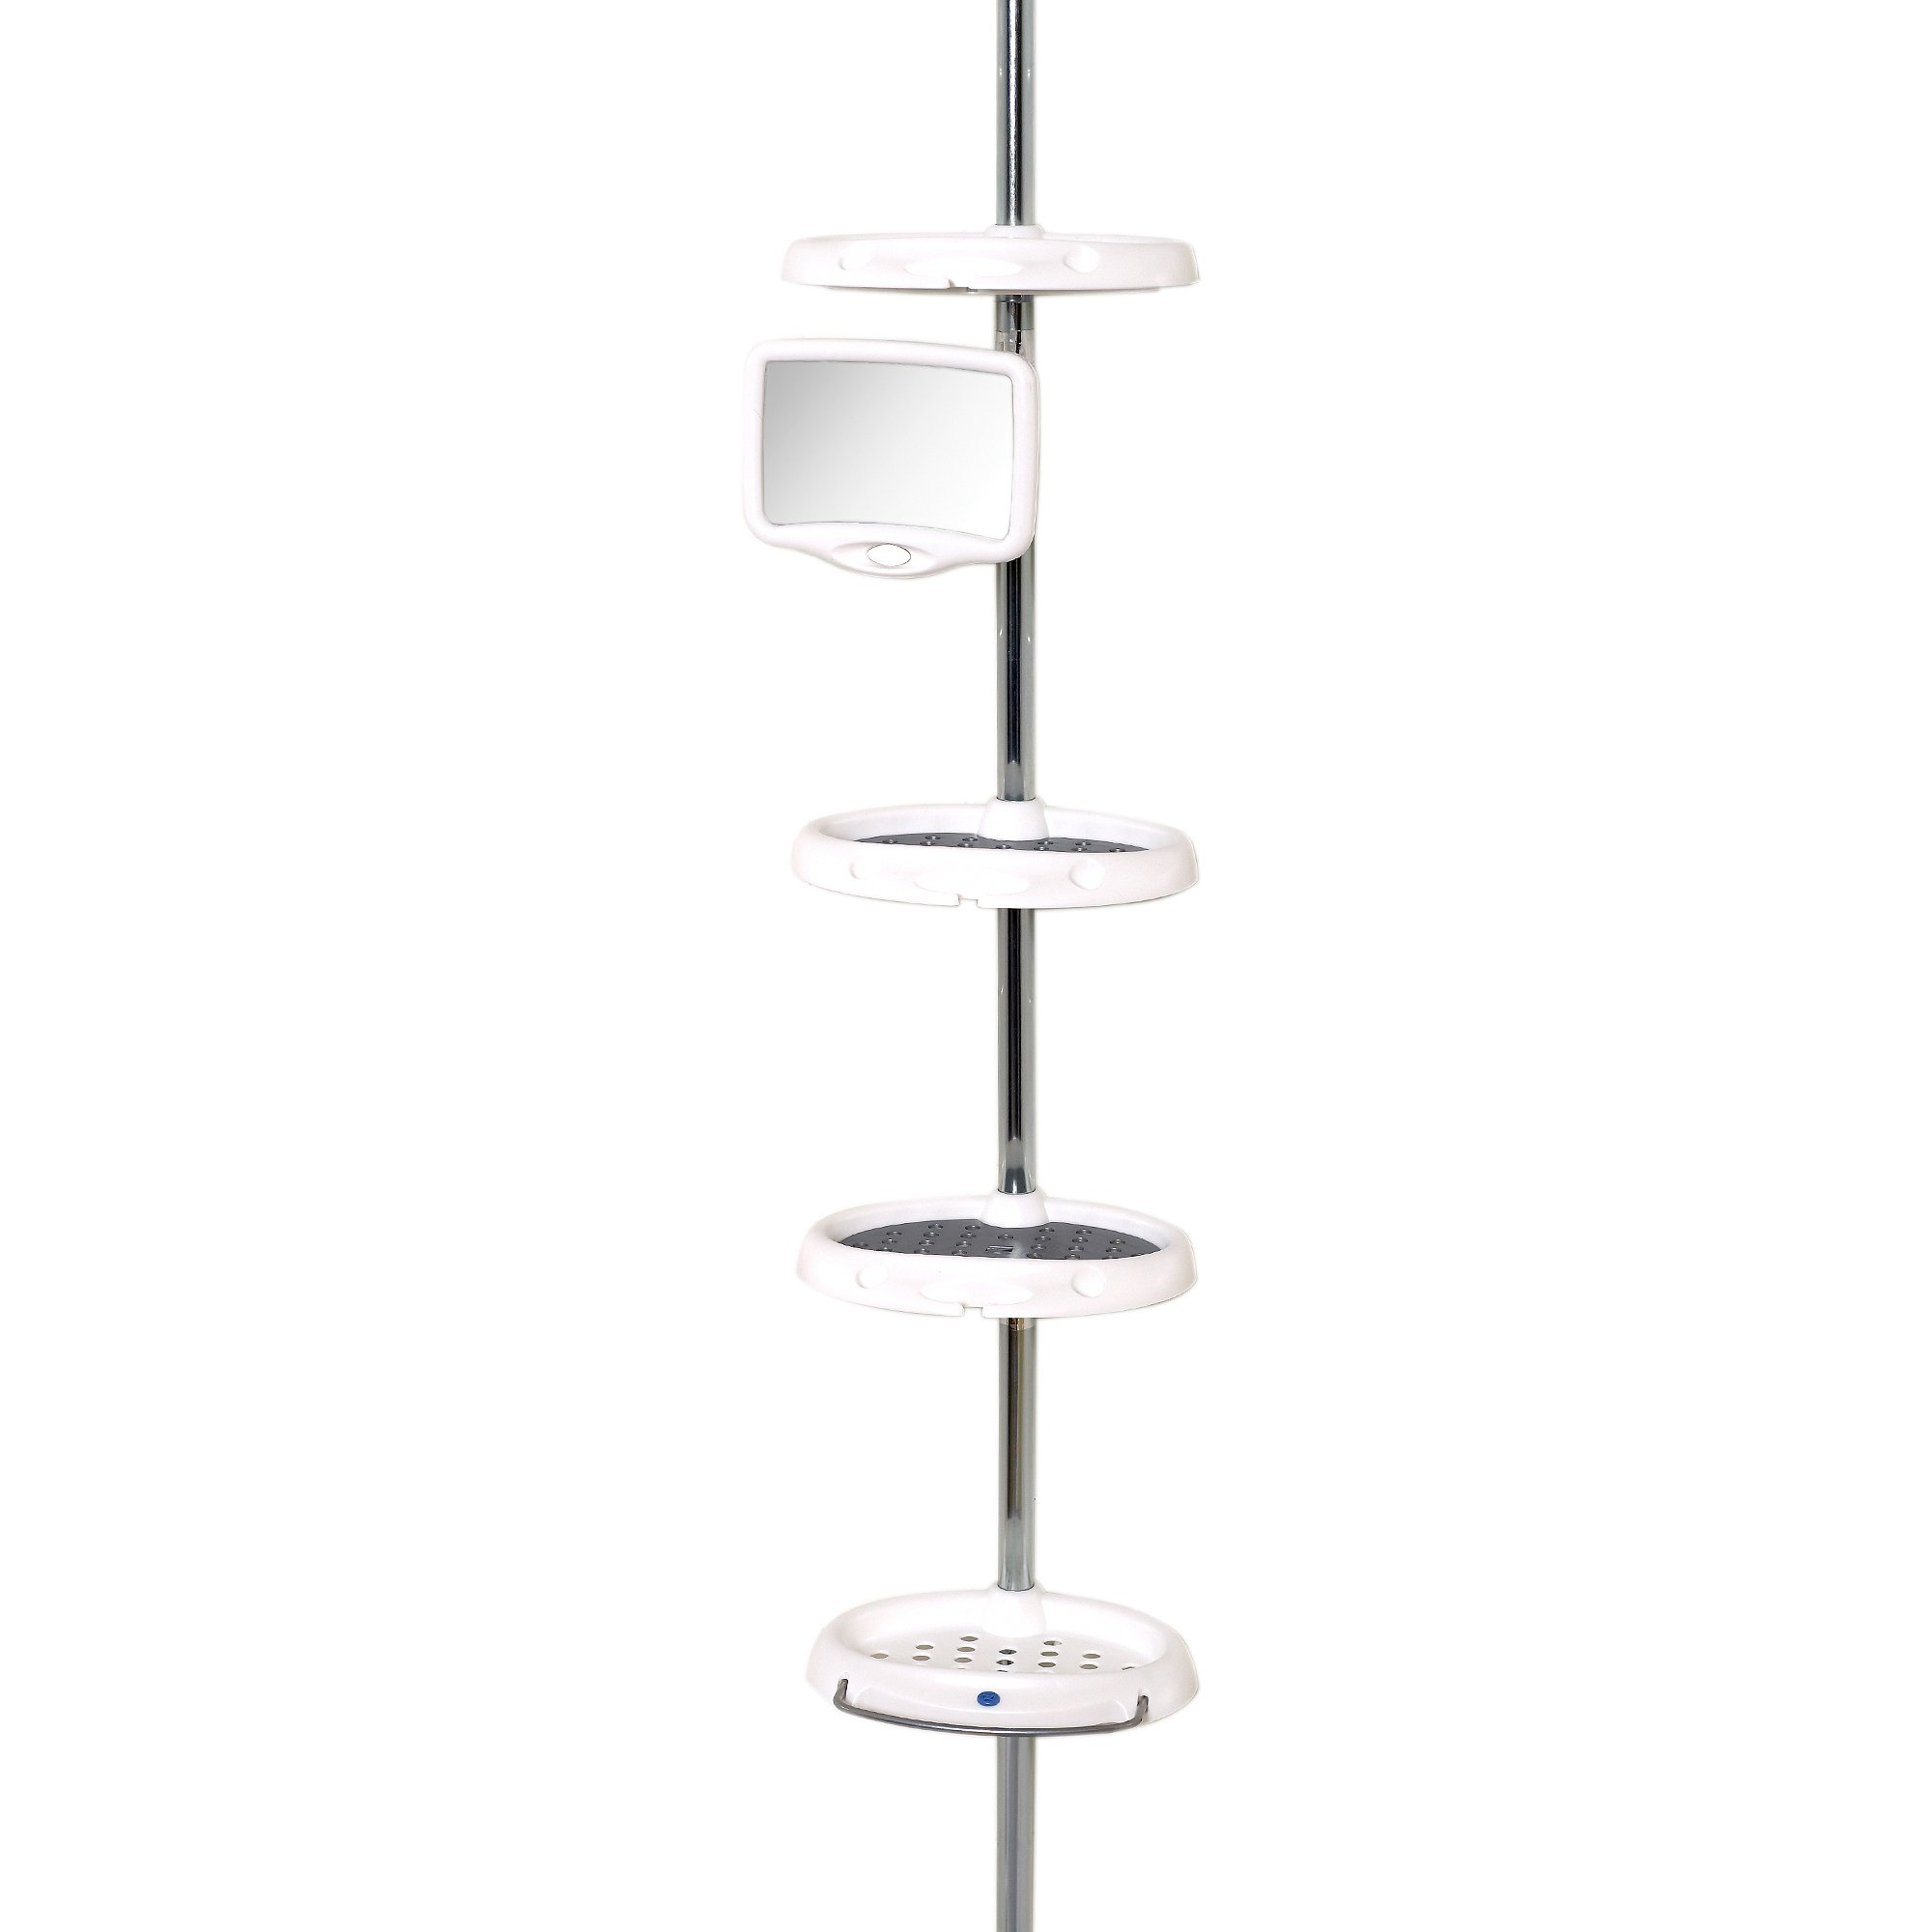 Zenna Home 5804B, Deluxe Bathtub and Shower Tension Corner Pole Caddy, White/Chrome